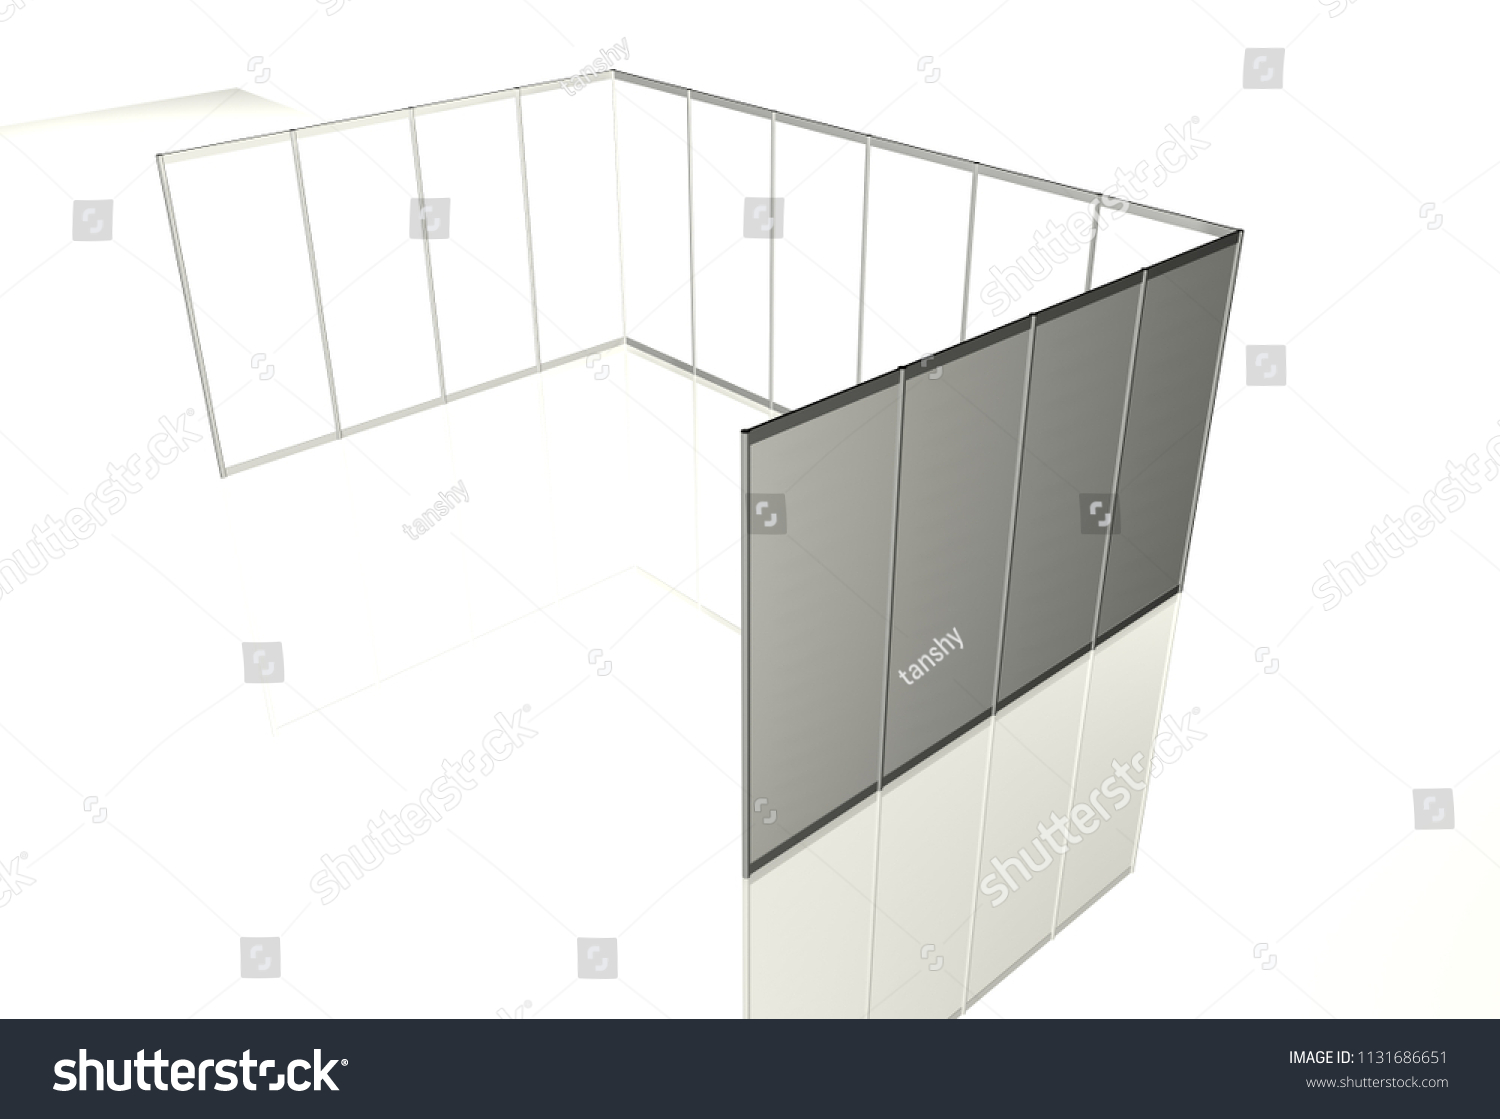 Exhibition Stand Drawing : Trade exhibition stand exhibition round 3 d stock illustration